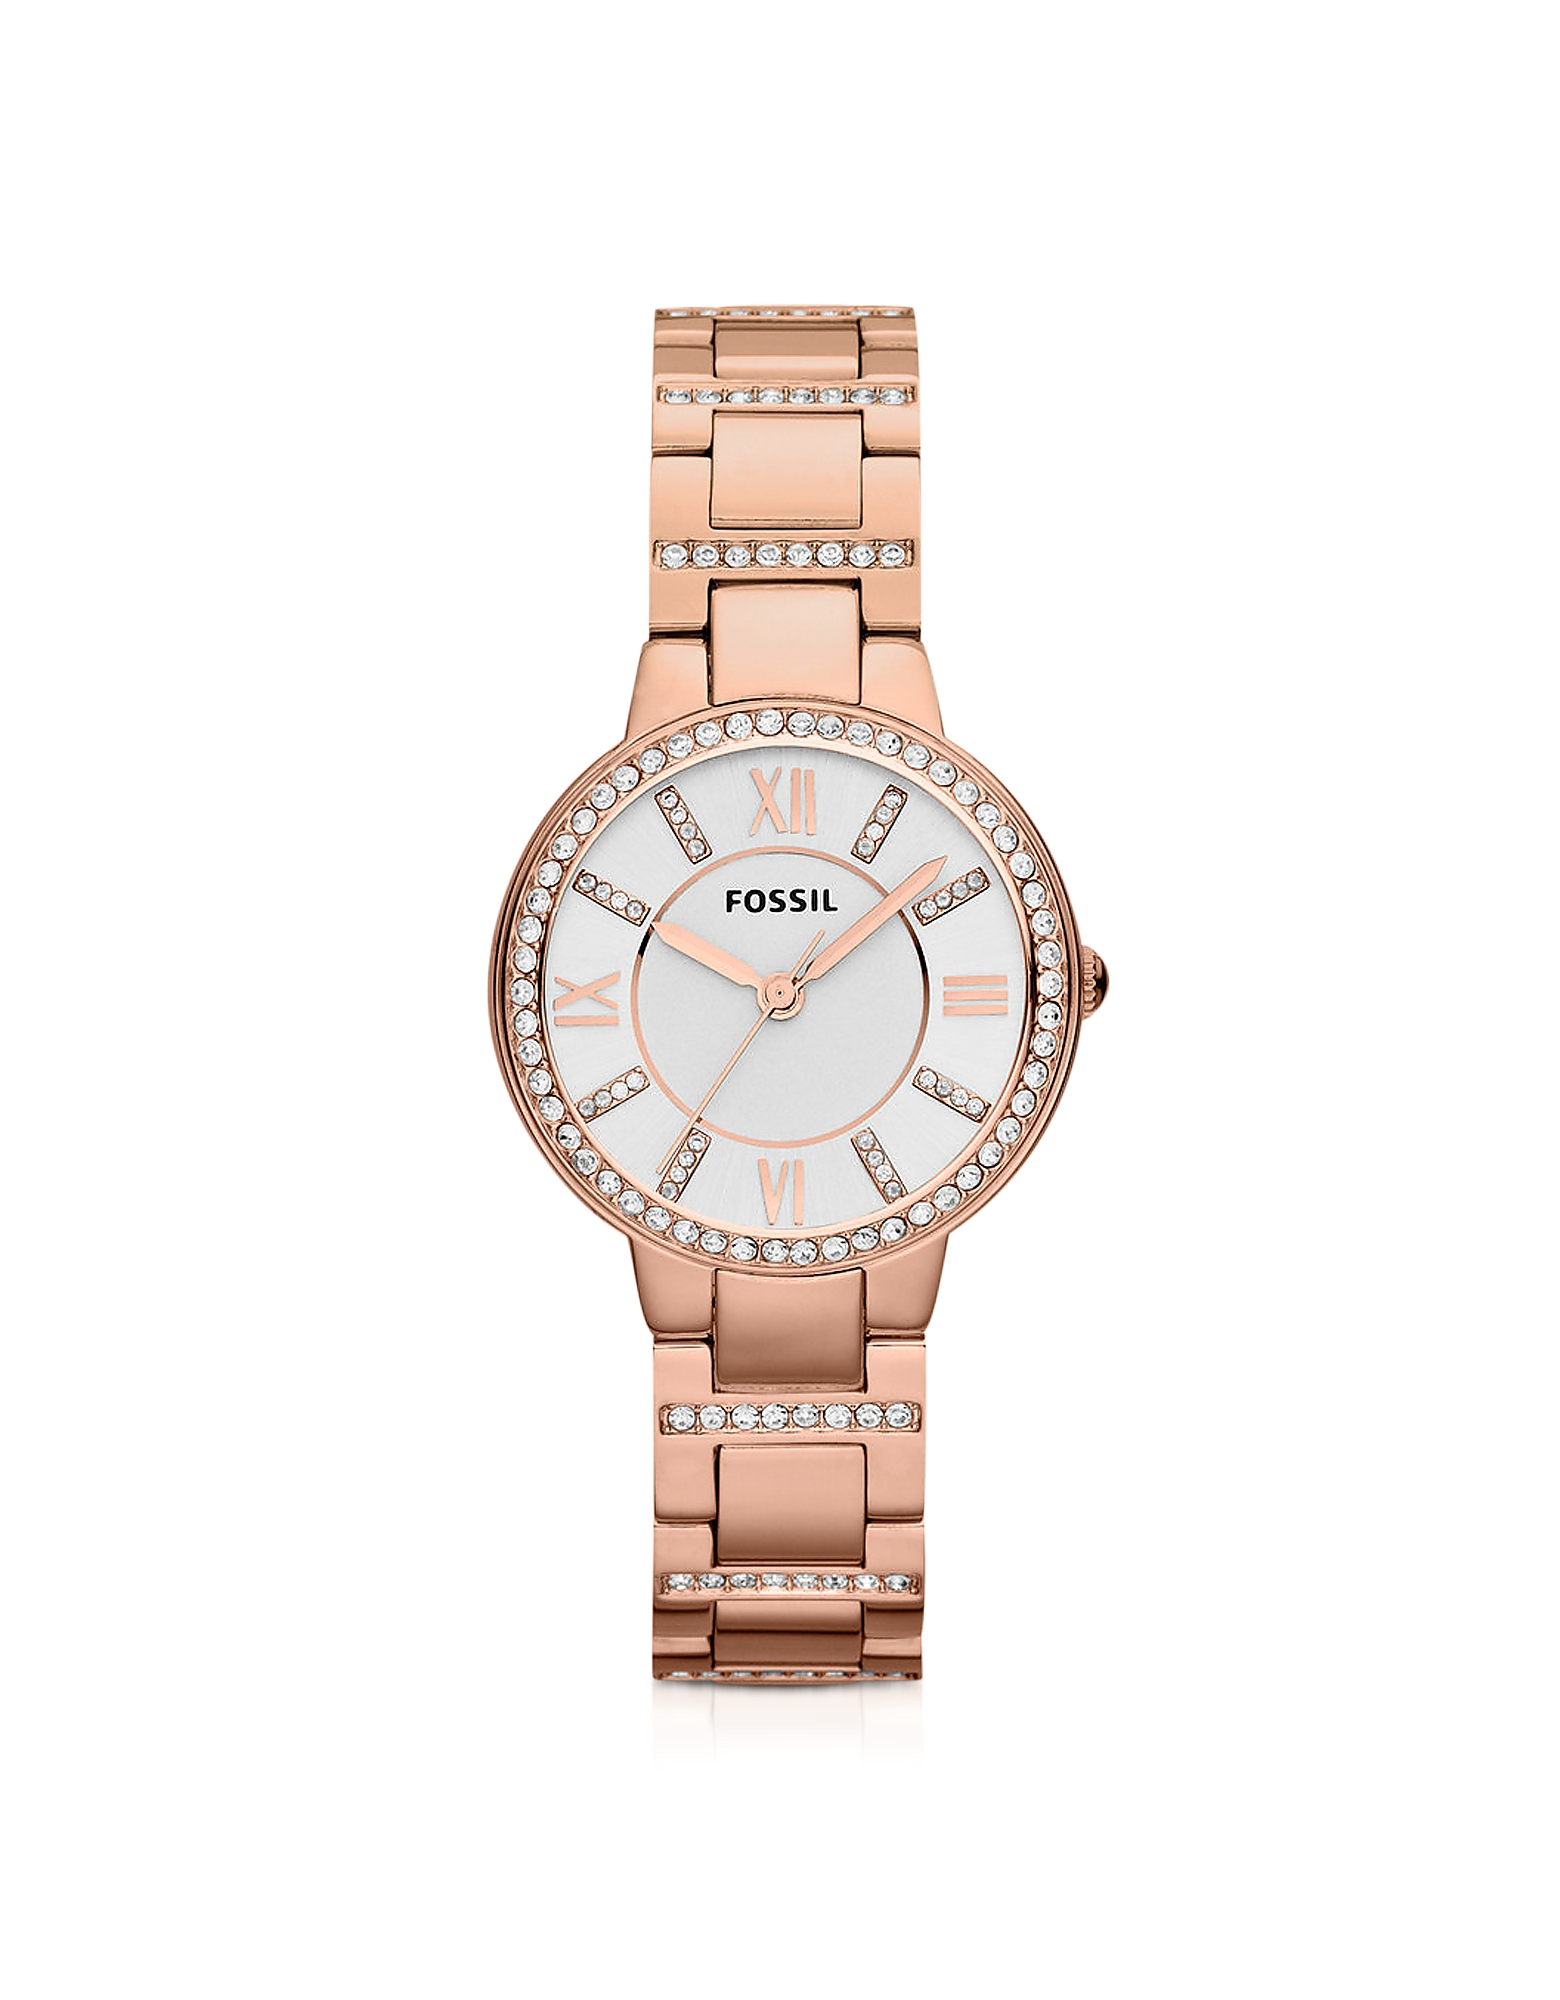 Fossil Women's Watches, Virginia Three Hand Rose Golden Stainless Steel Women's Watch